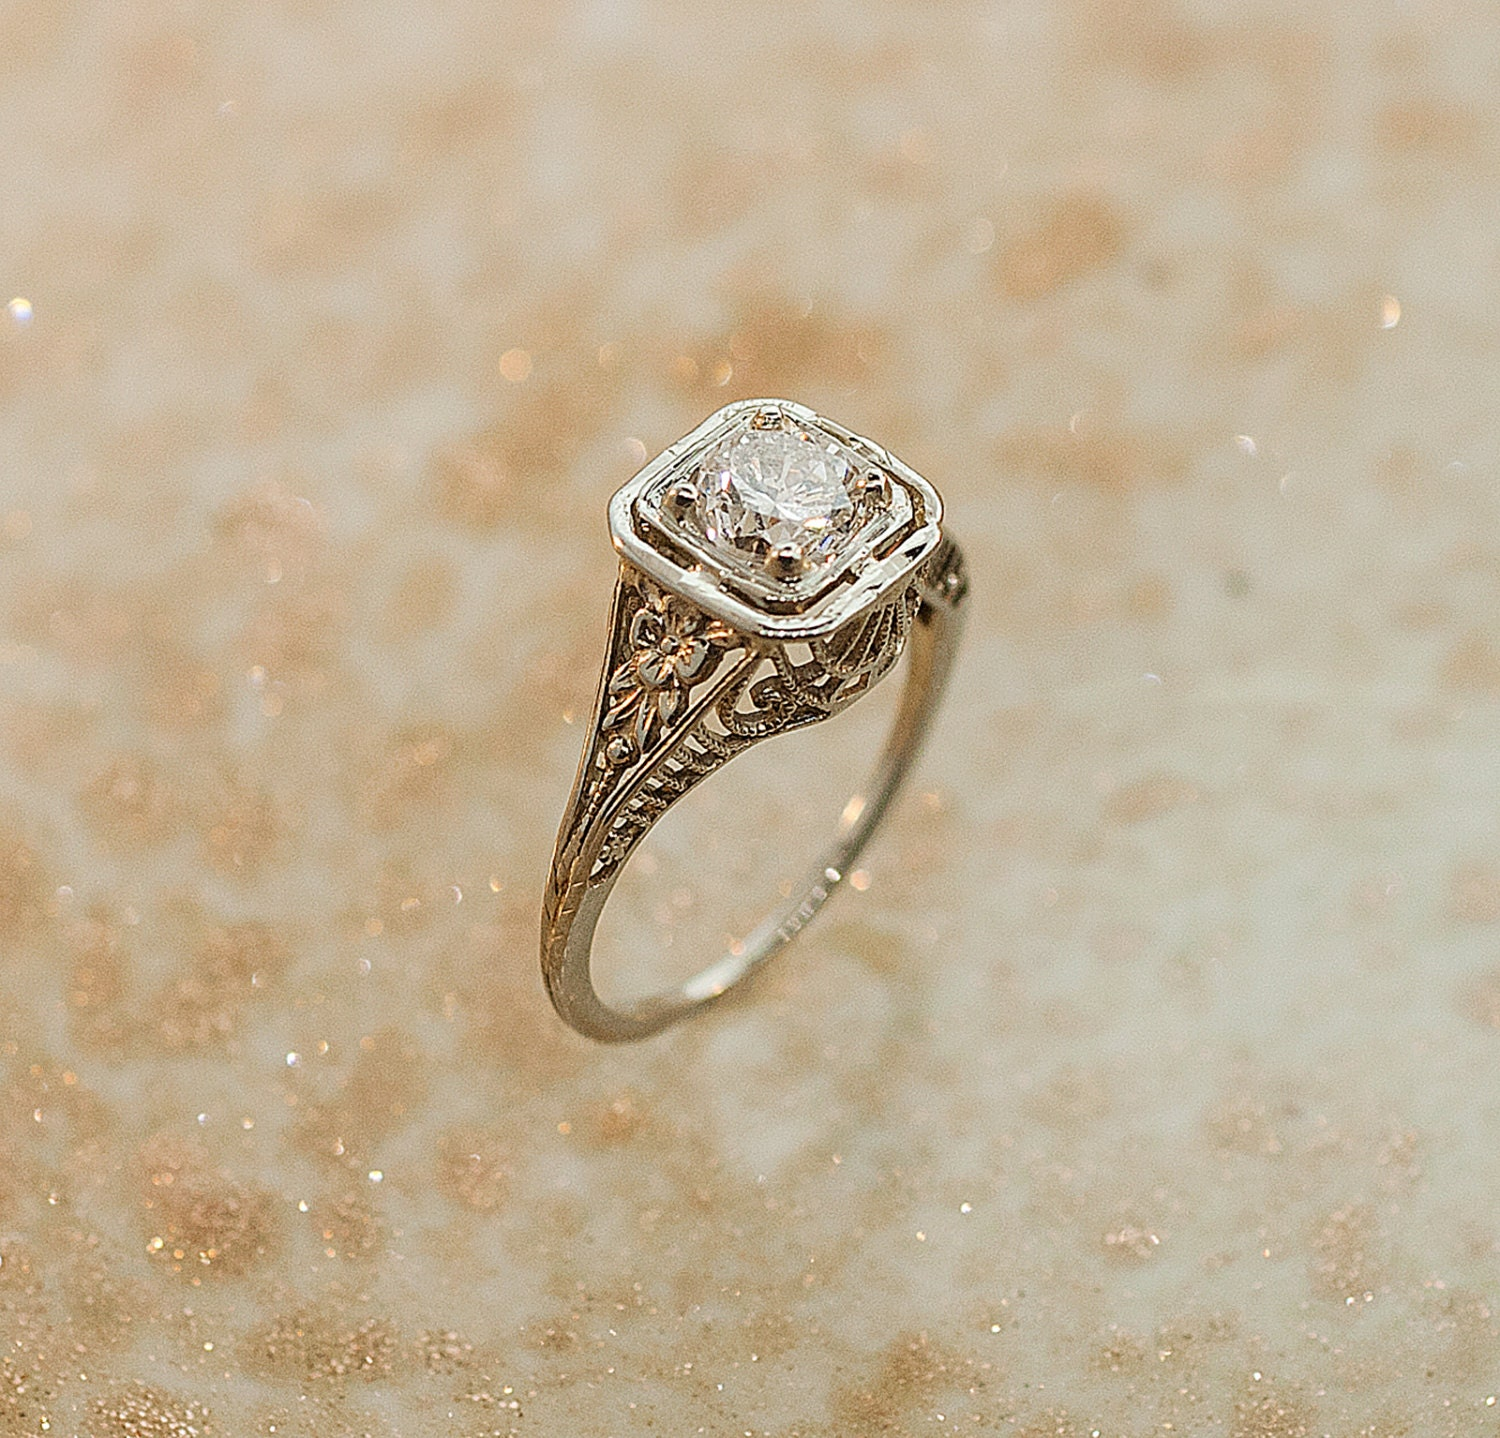 Antique Filigree Diamond Engagement Ring 14K by SITFineJewelry